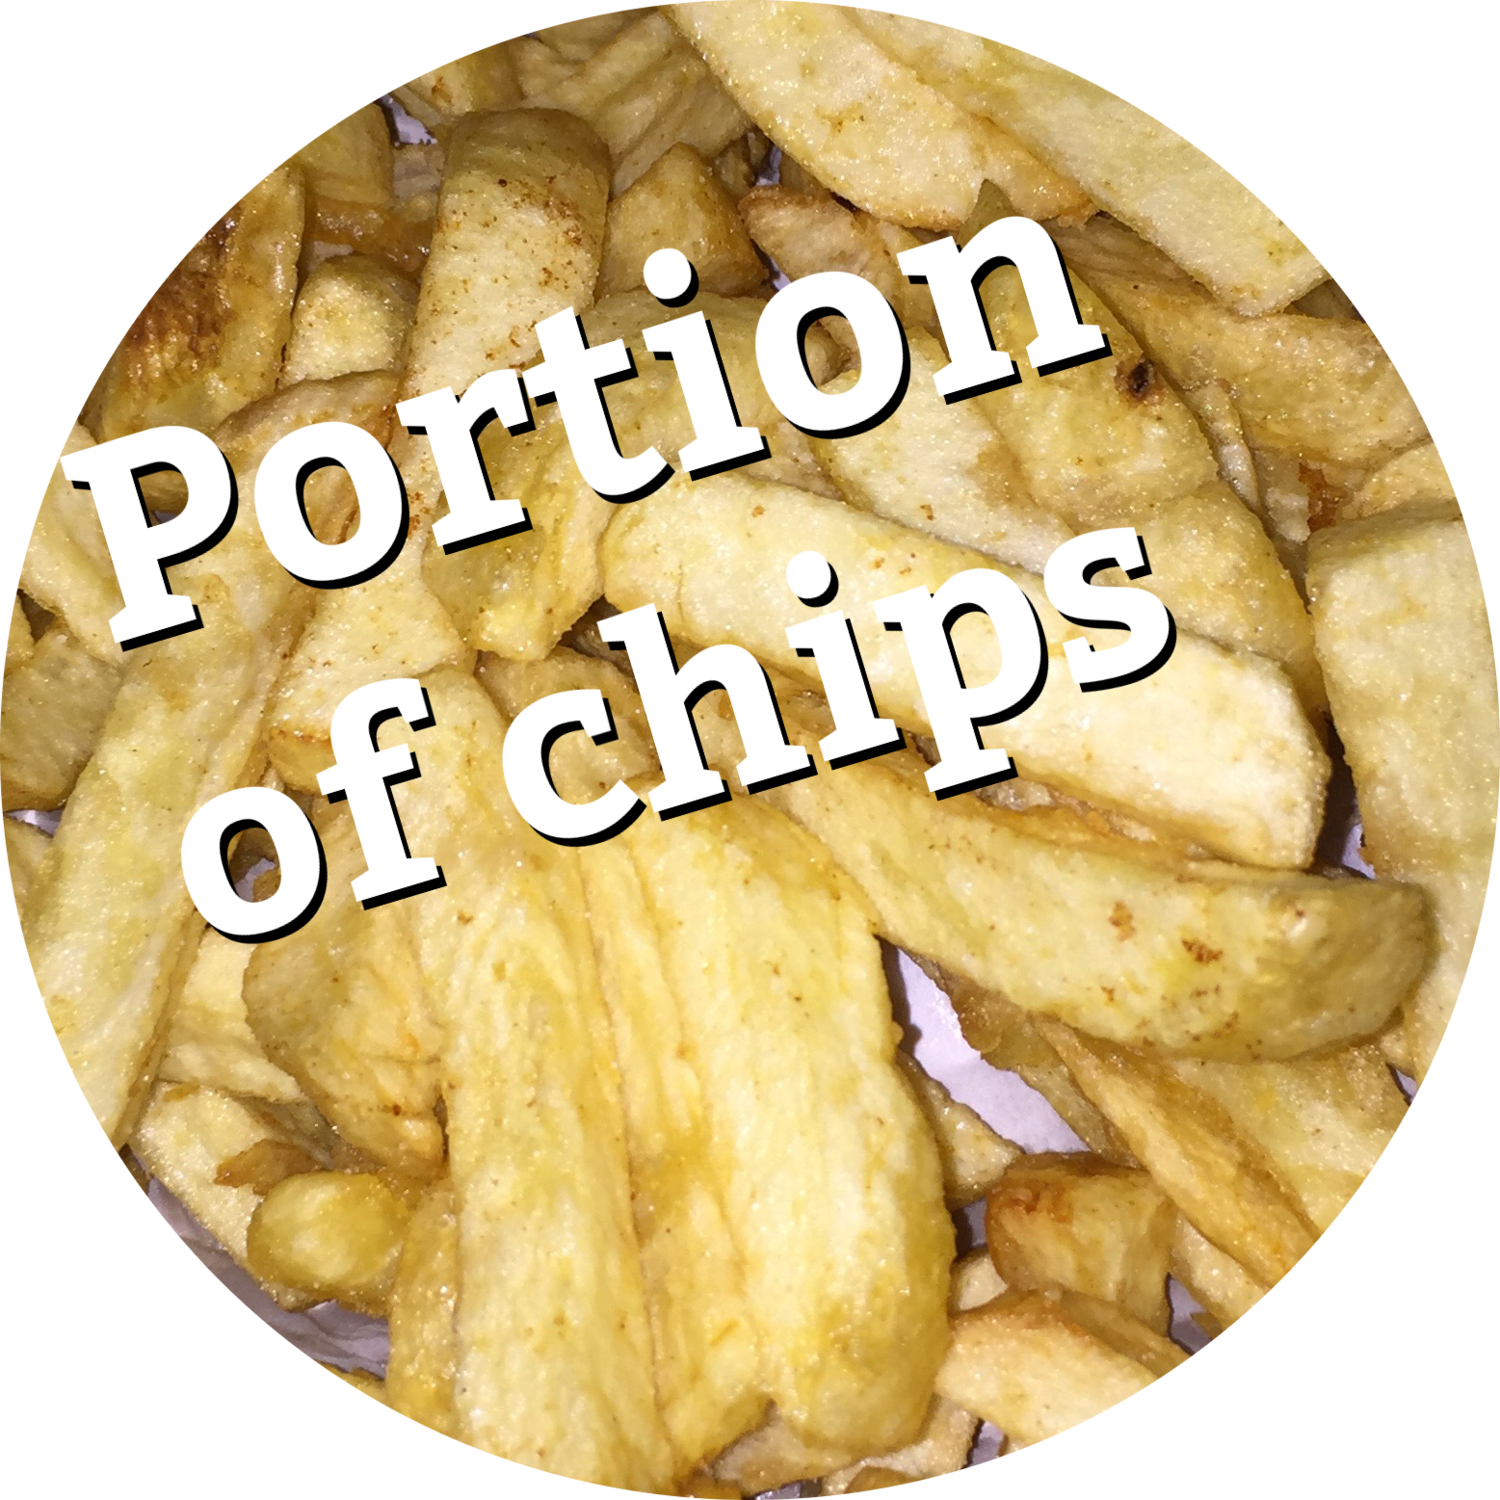 Portion of chips.com, the chip shop review site